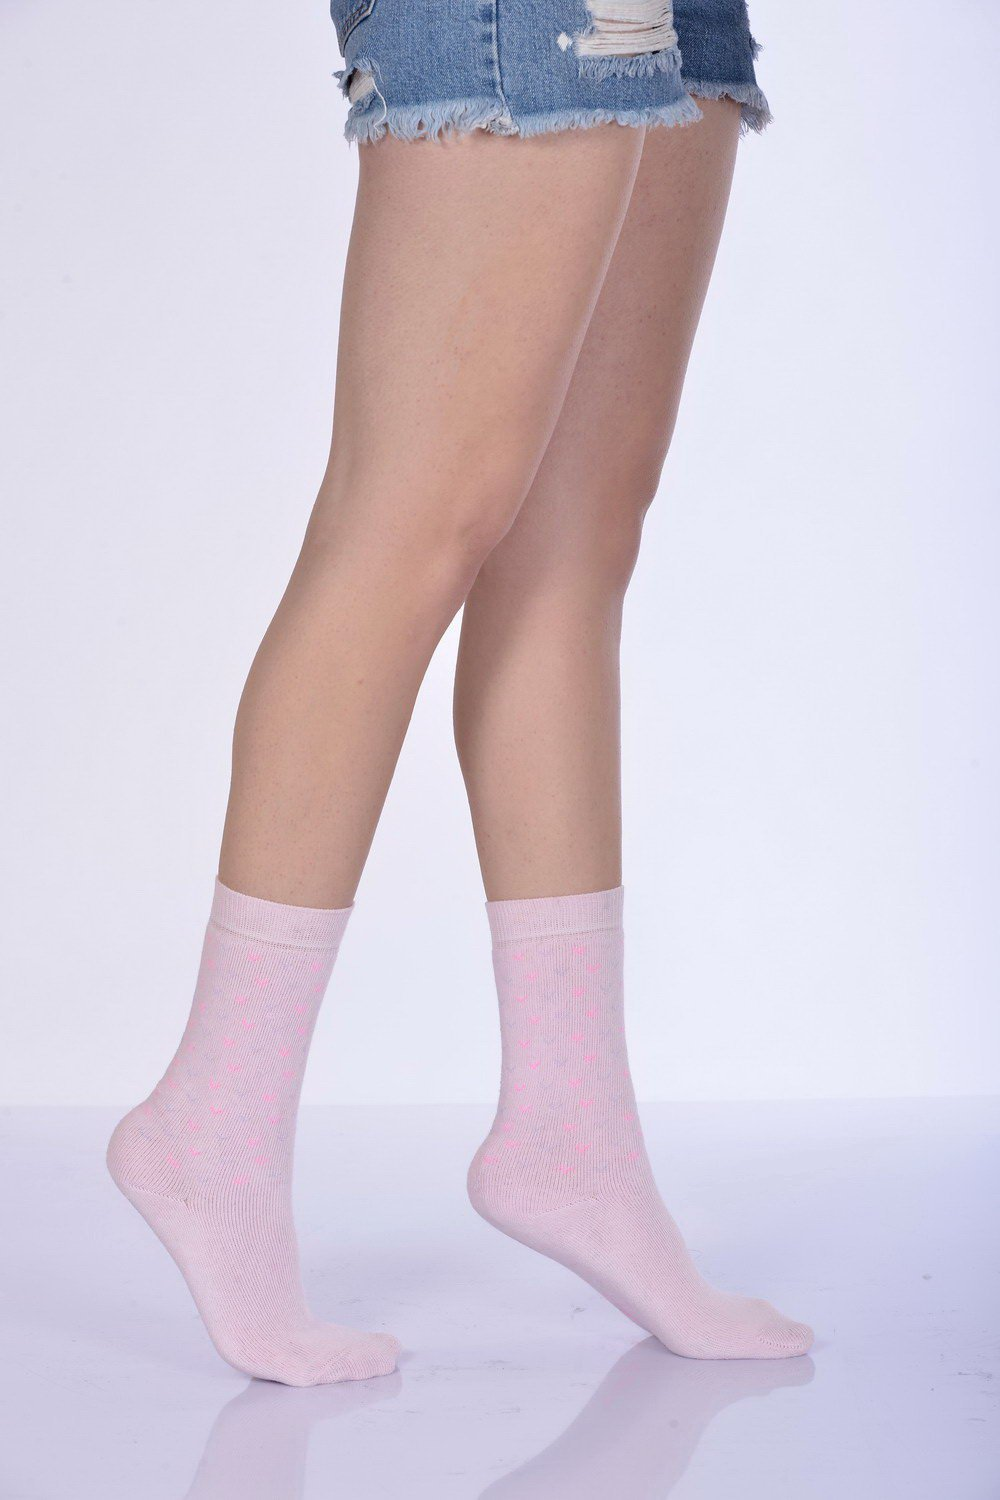 Women's Pink Winter Socket Socks- 3 Pairs